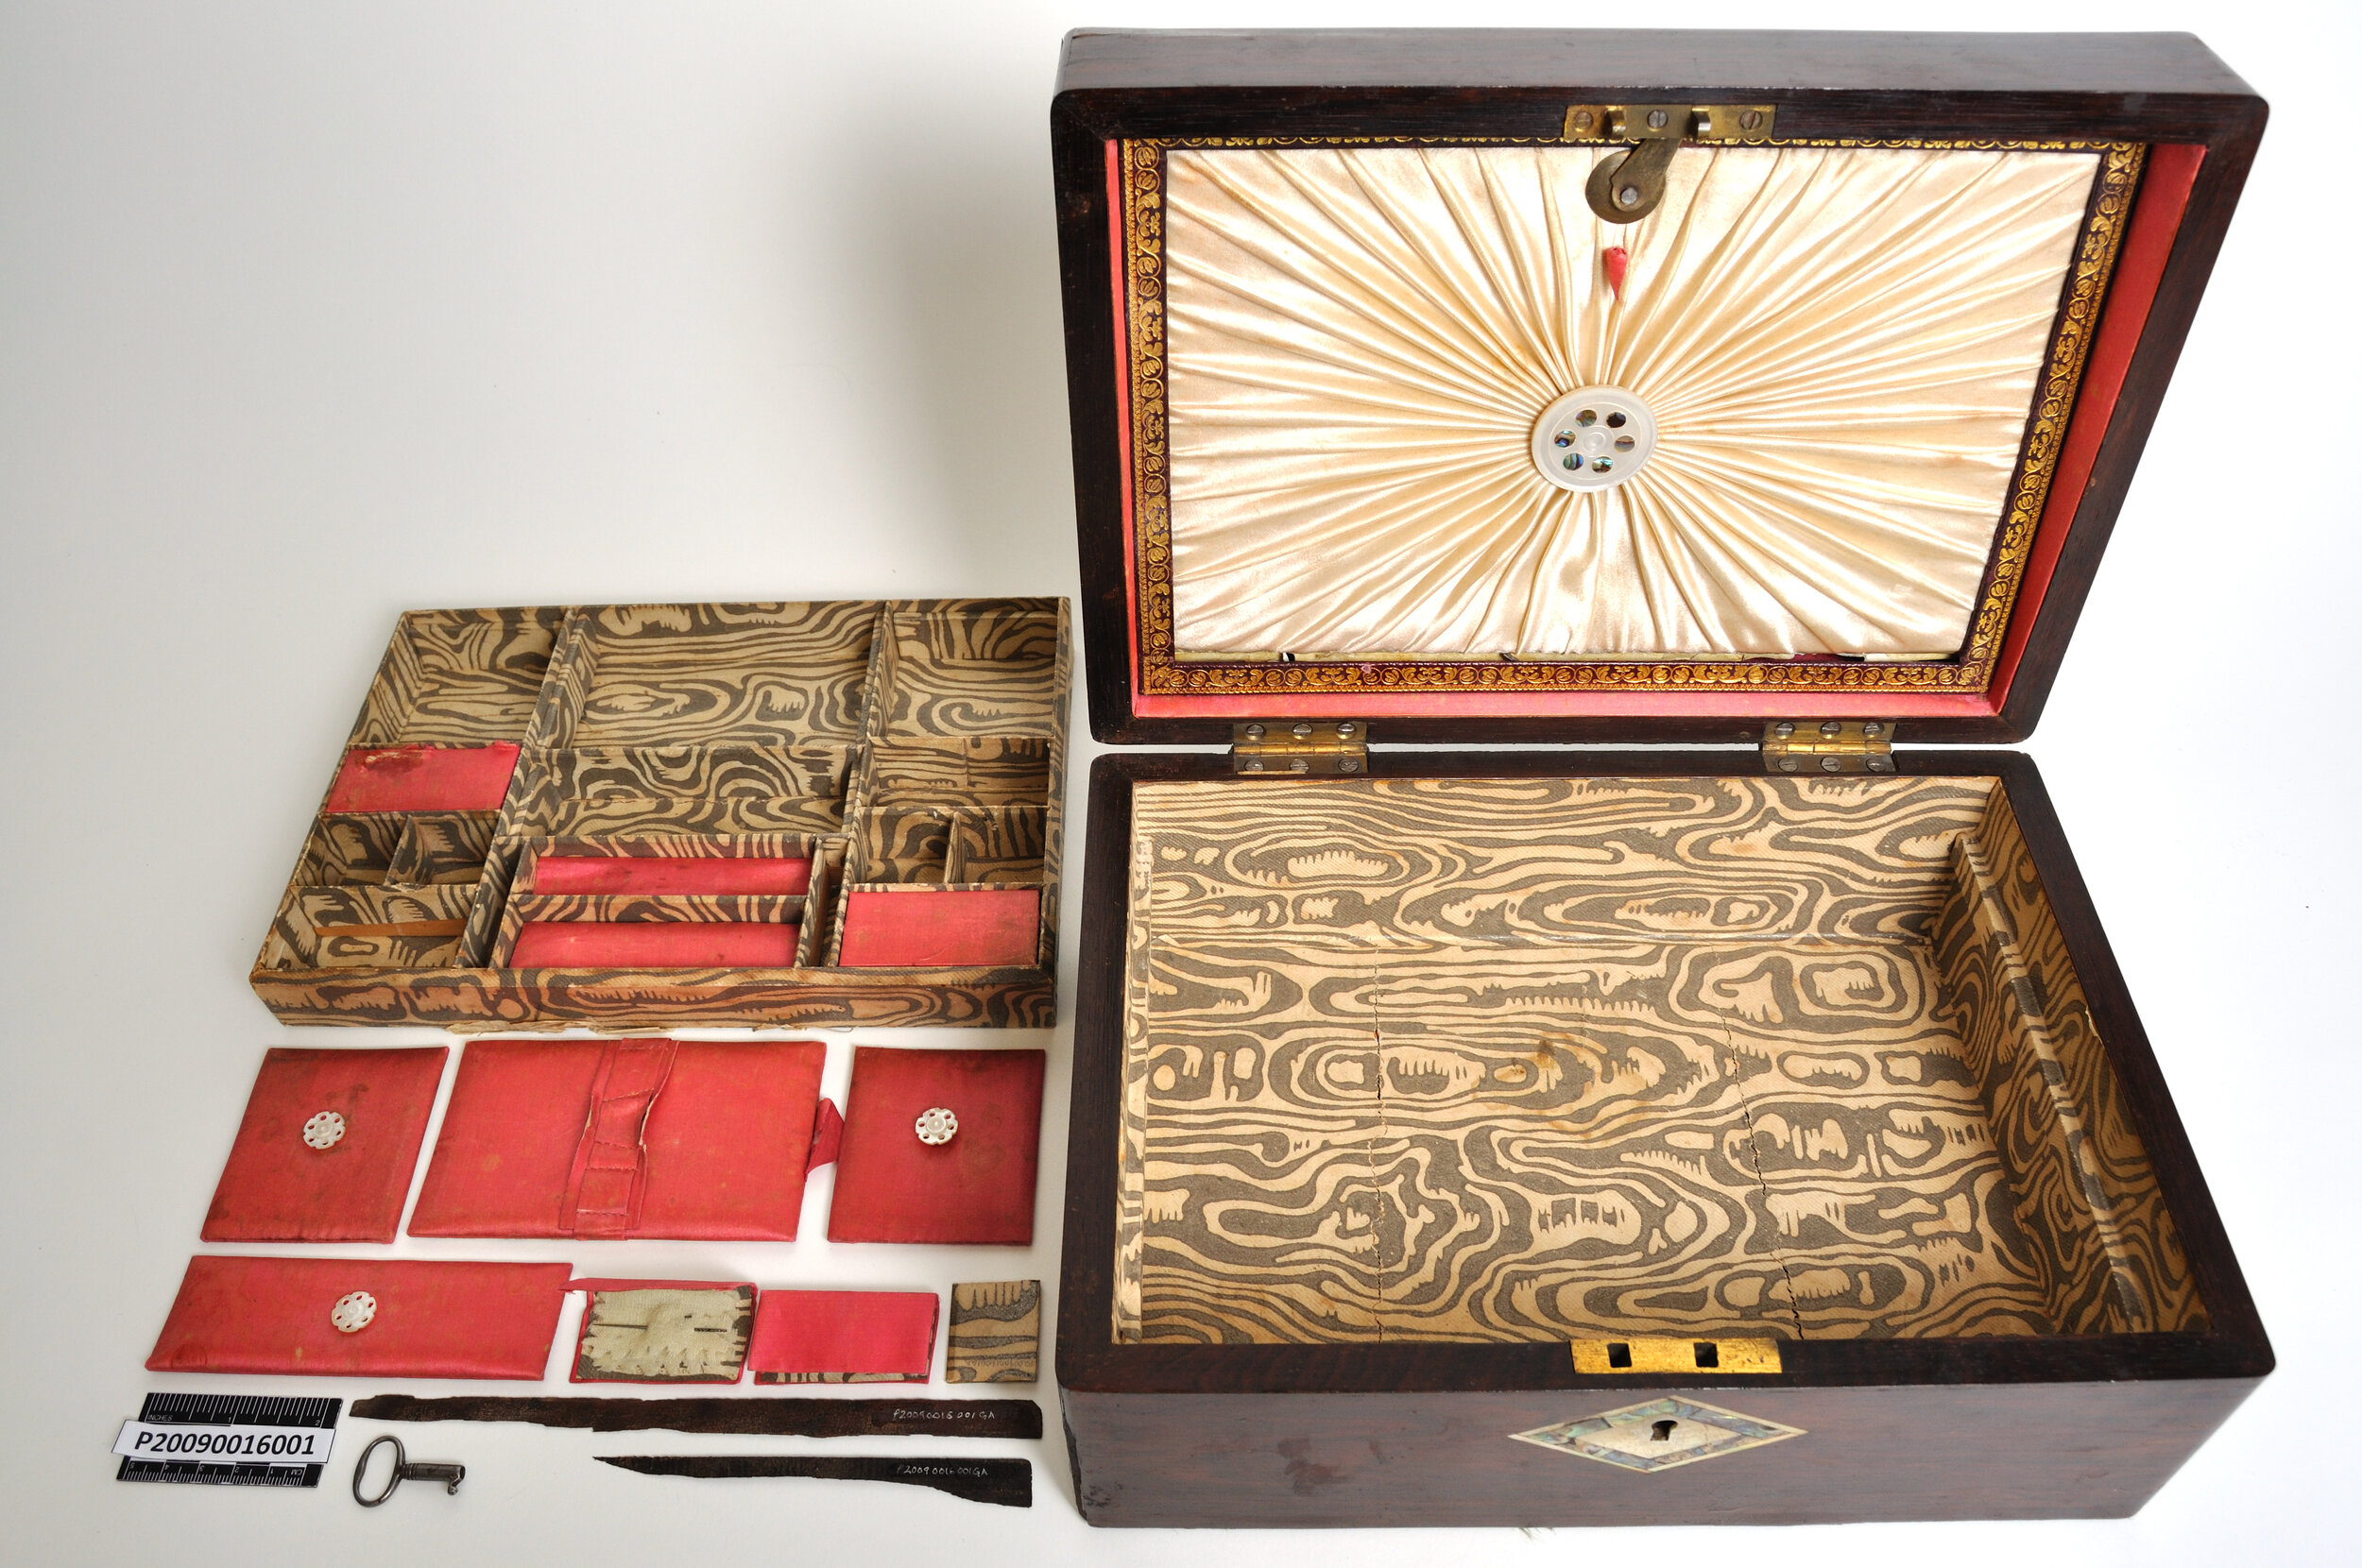 A needle box that originally belonged to Edith Kirk's mother. Donated to the Galt by Katherine Ives Twiss who received the box from Kirk.   Photo courtesy the Galt Museum & Archives: 20090016001